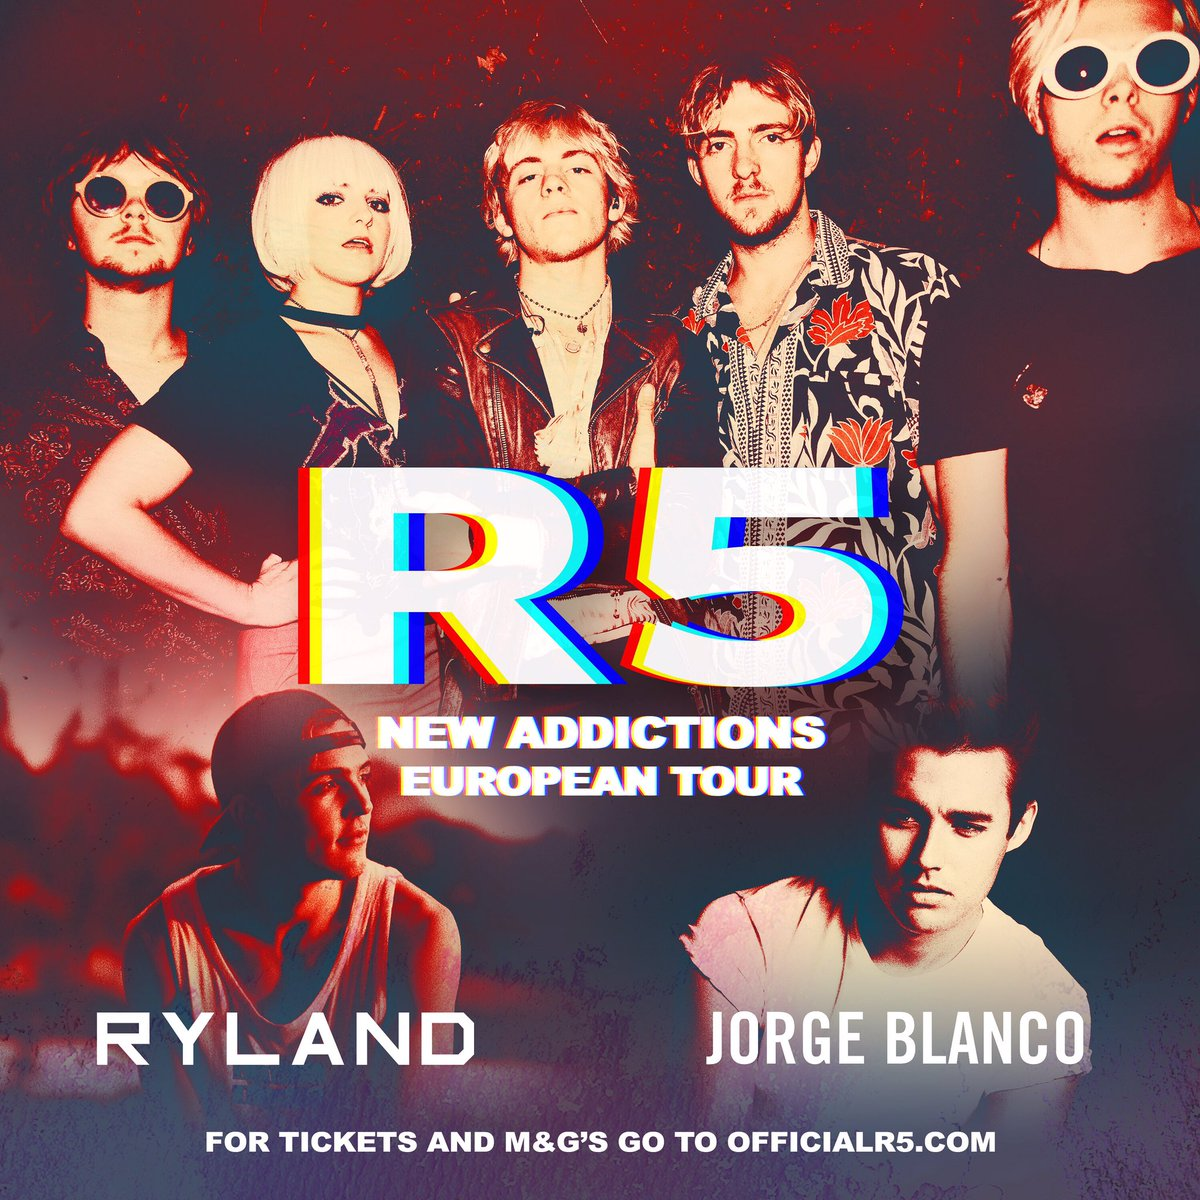 Ryland lynch on twitter europe our tour starts september 13th for ryland lynch on twitter europe our tour starts september 13th for tickets and meet greet info click the link httpstlk8vyq08nq hope to see you all kristyandbryce Images